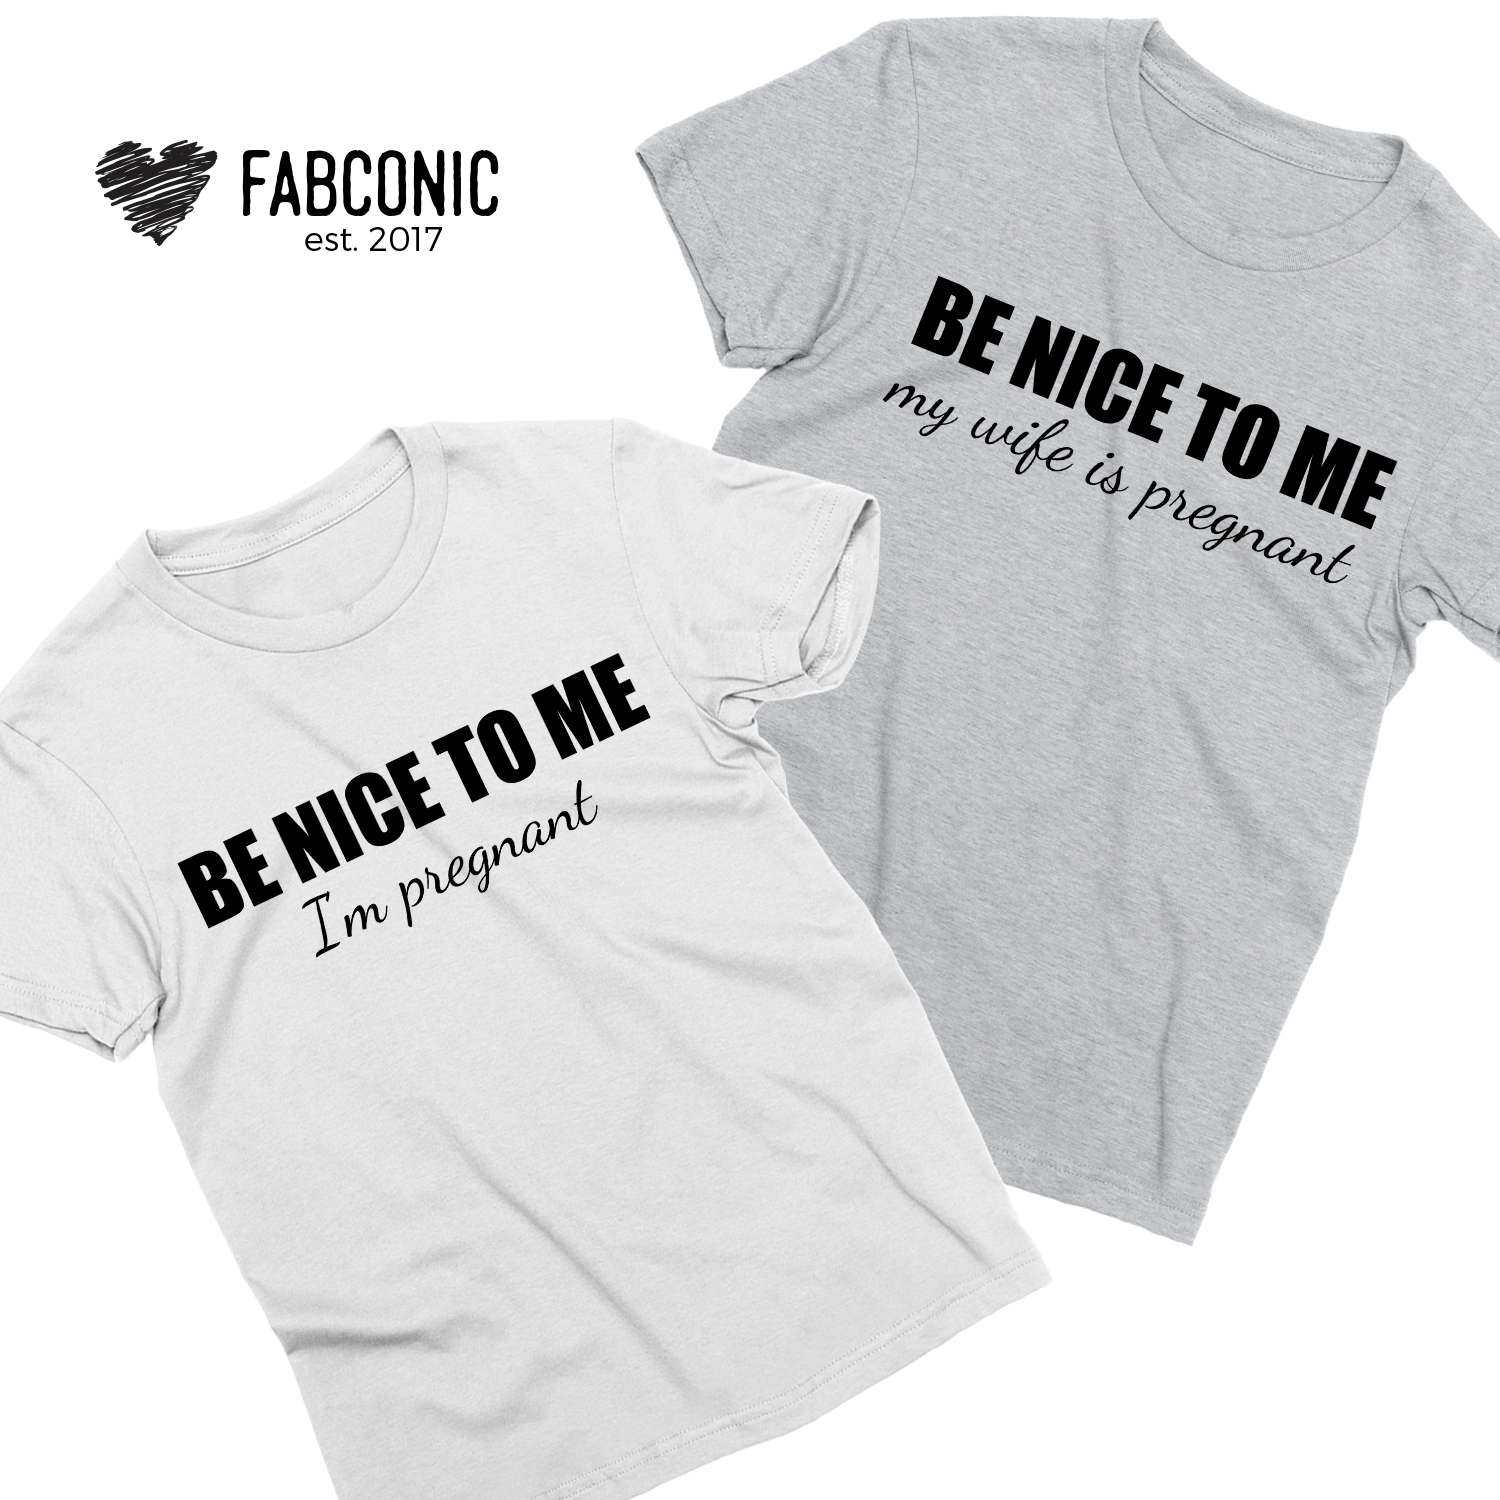 765d2f20e67d2 Funny Pregnancy Shirts, Be Nice to me I'm Pregnant, Couple Shirts